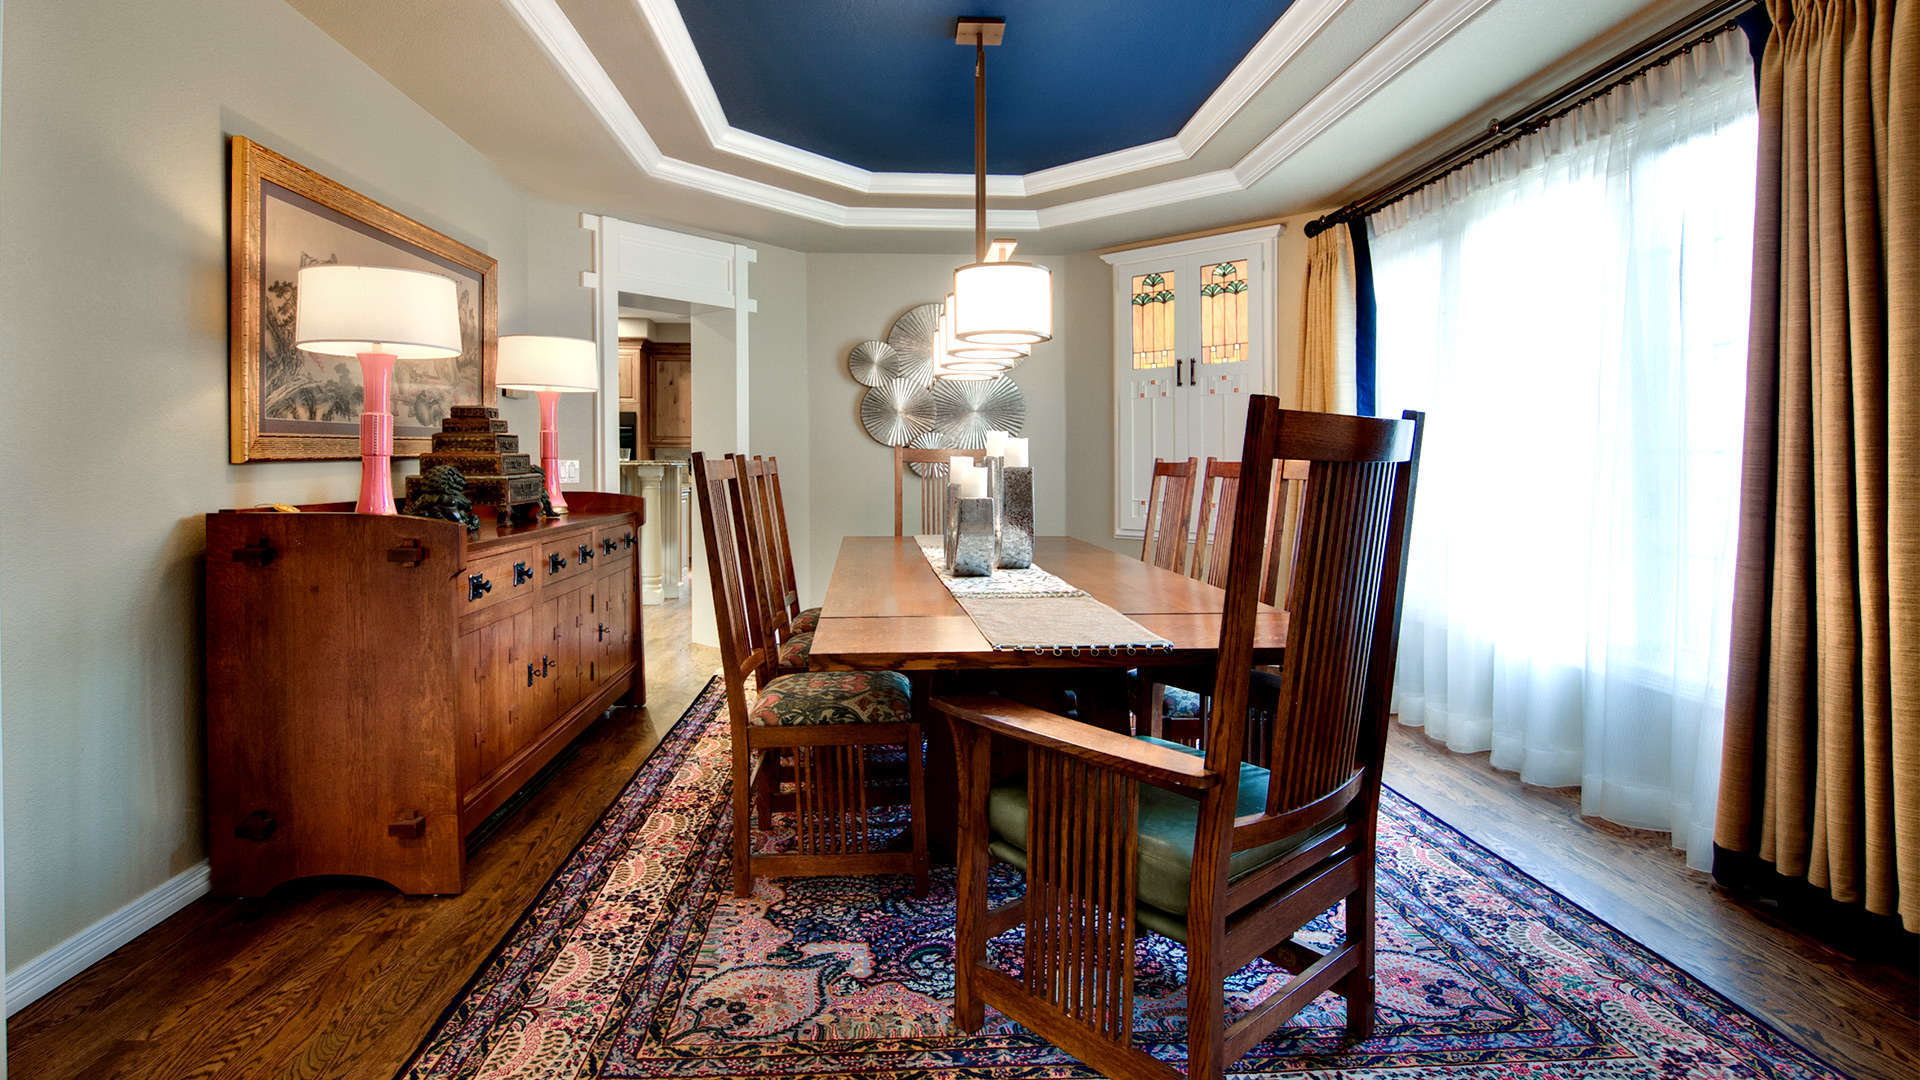 interior-designer-denver-diningroom-ku-interior-design-1080